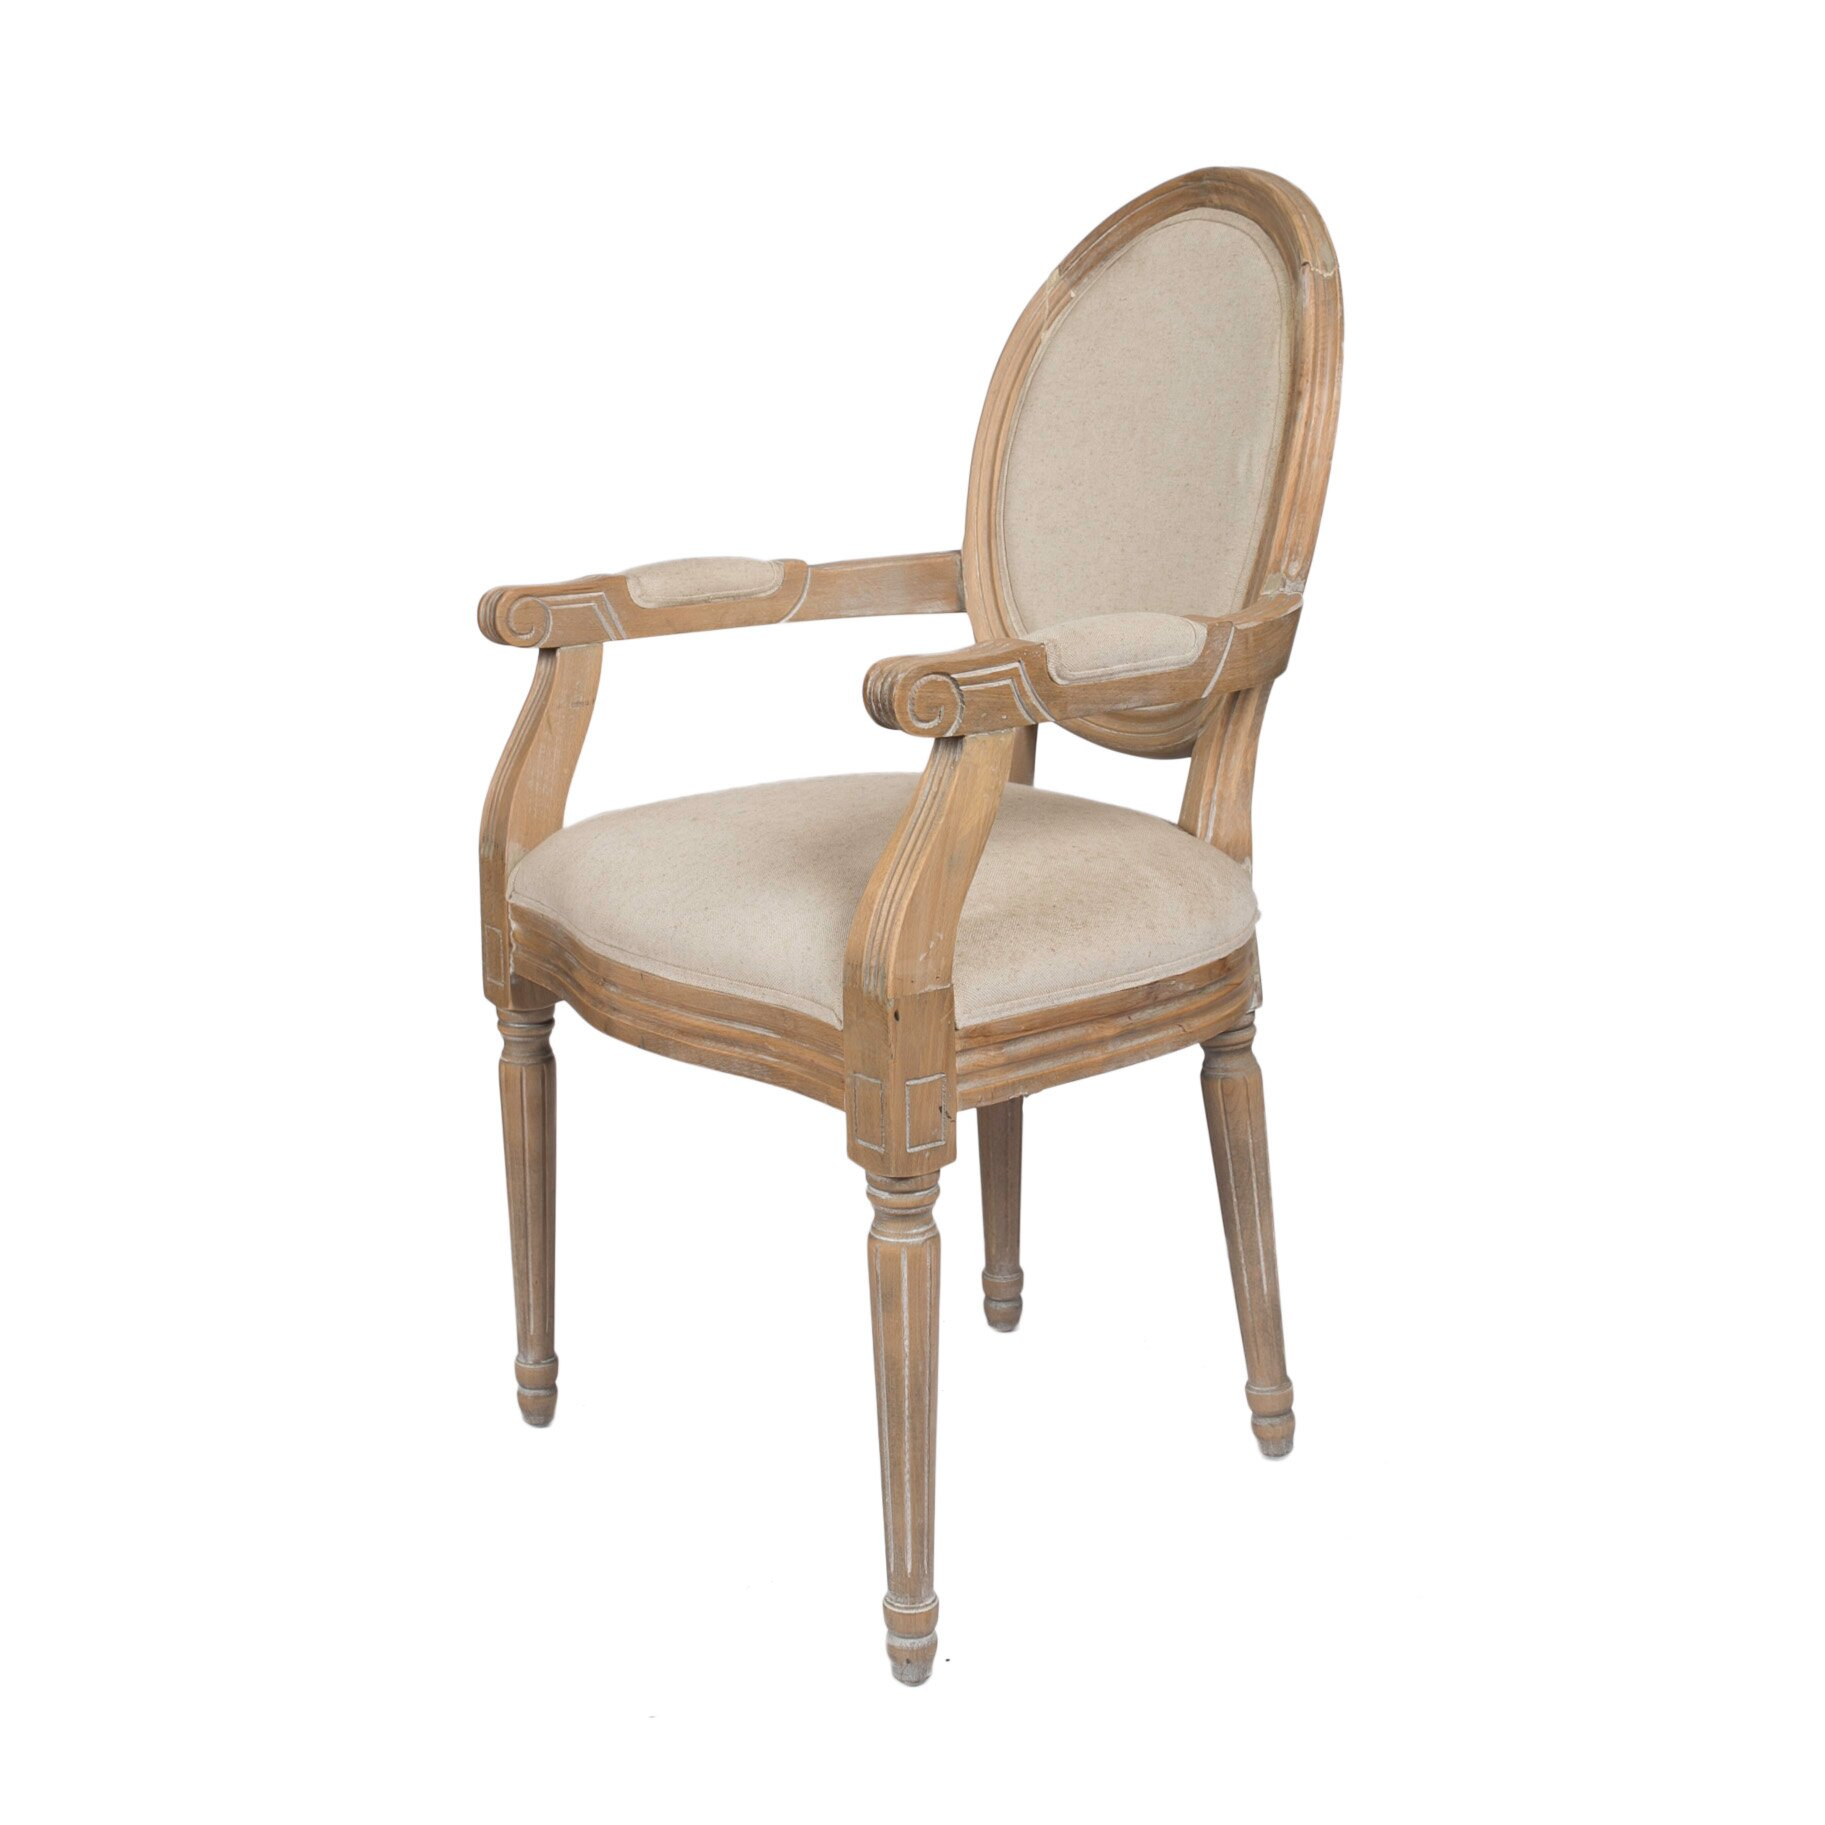 Derry s Louis Round Back Carver Dining Chair & Reviews